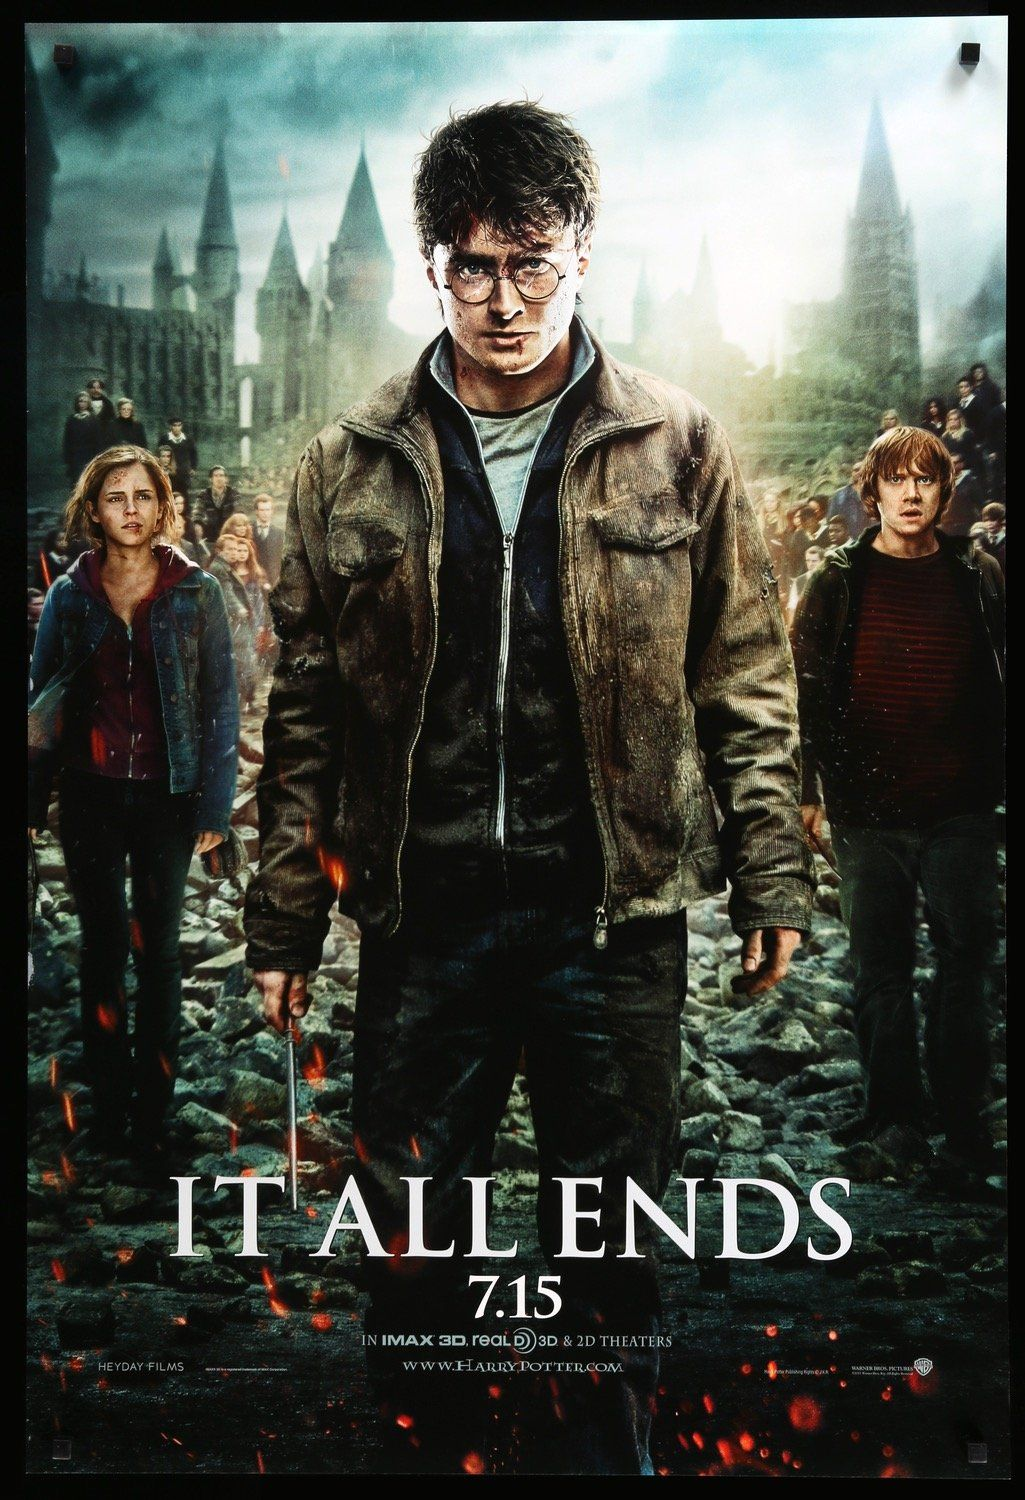 Harry Potter And The Deathly Hallows Part 2 2011 In 2021 Deathly Hallows Part 2 Harry Potter Movies Deathly Hallows Movie